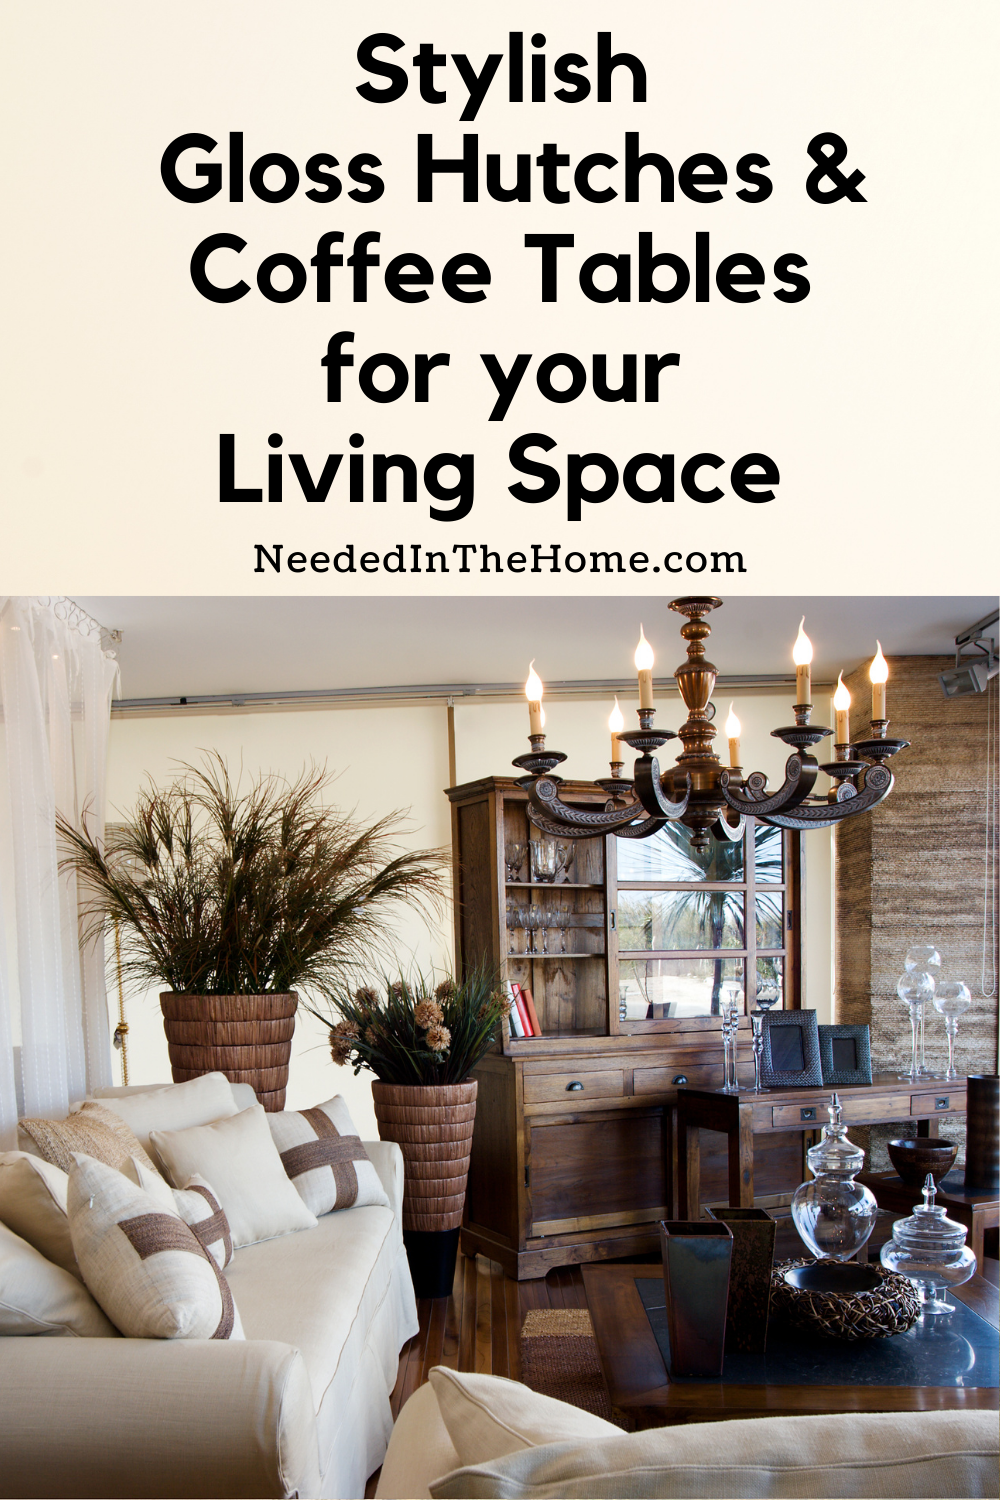 pinterest-pin-description stylish gloss hutches and coffee tables for your living space sofa chandelier plants vases neededinthehome